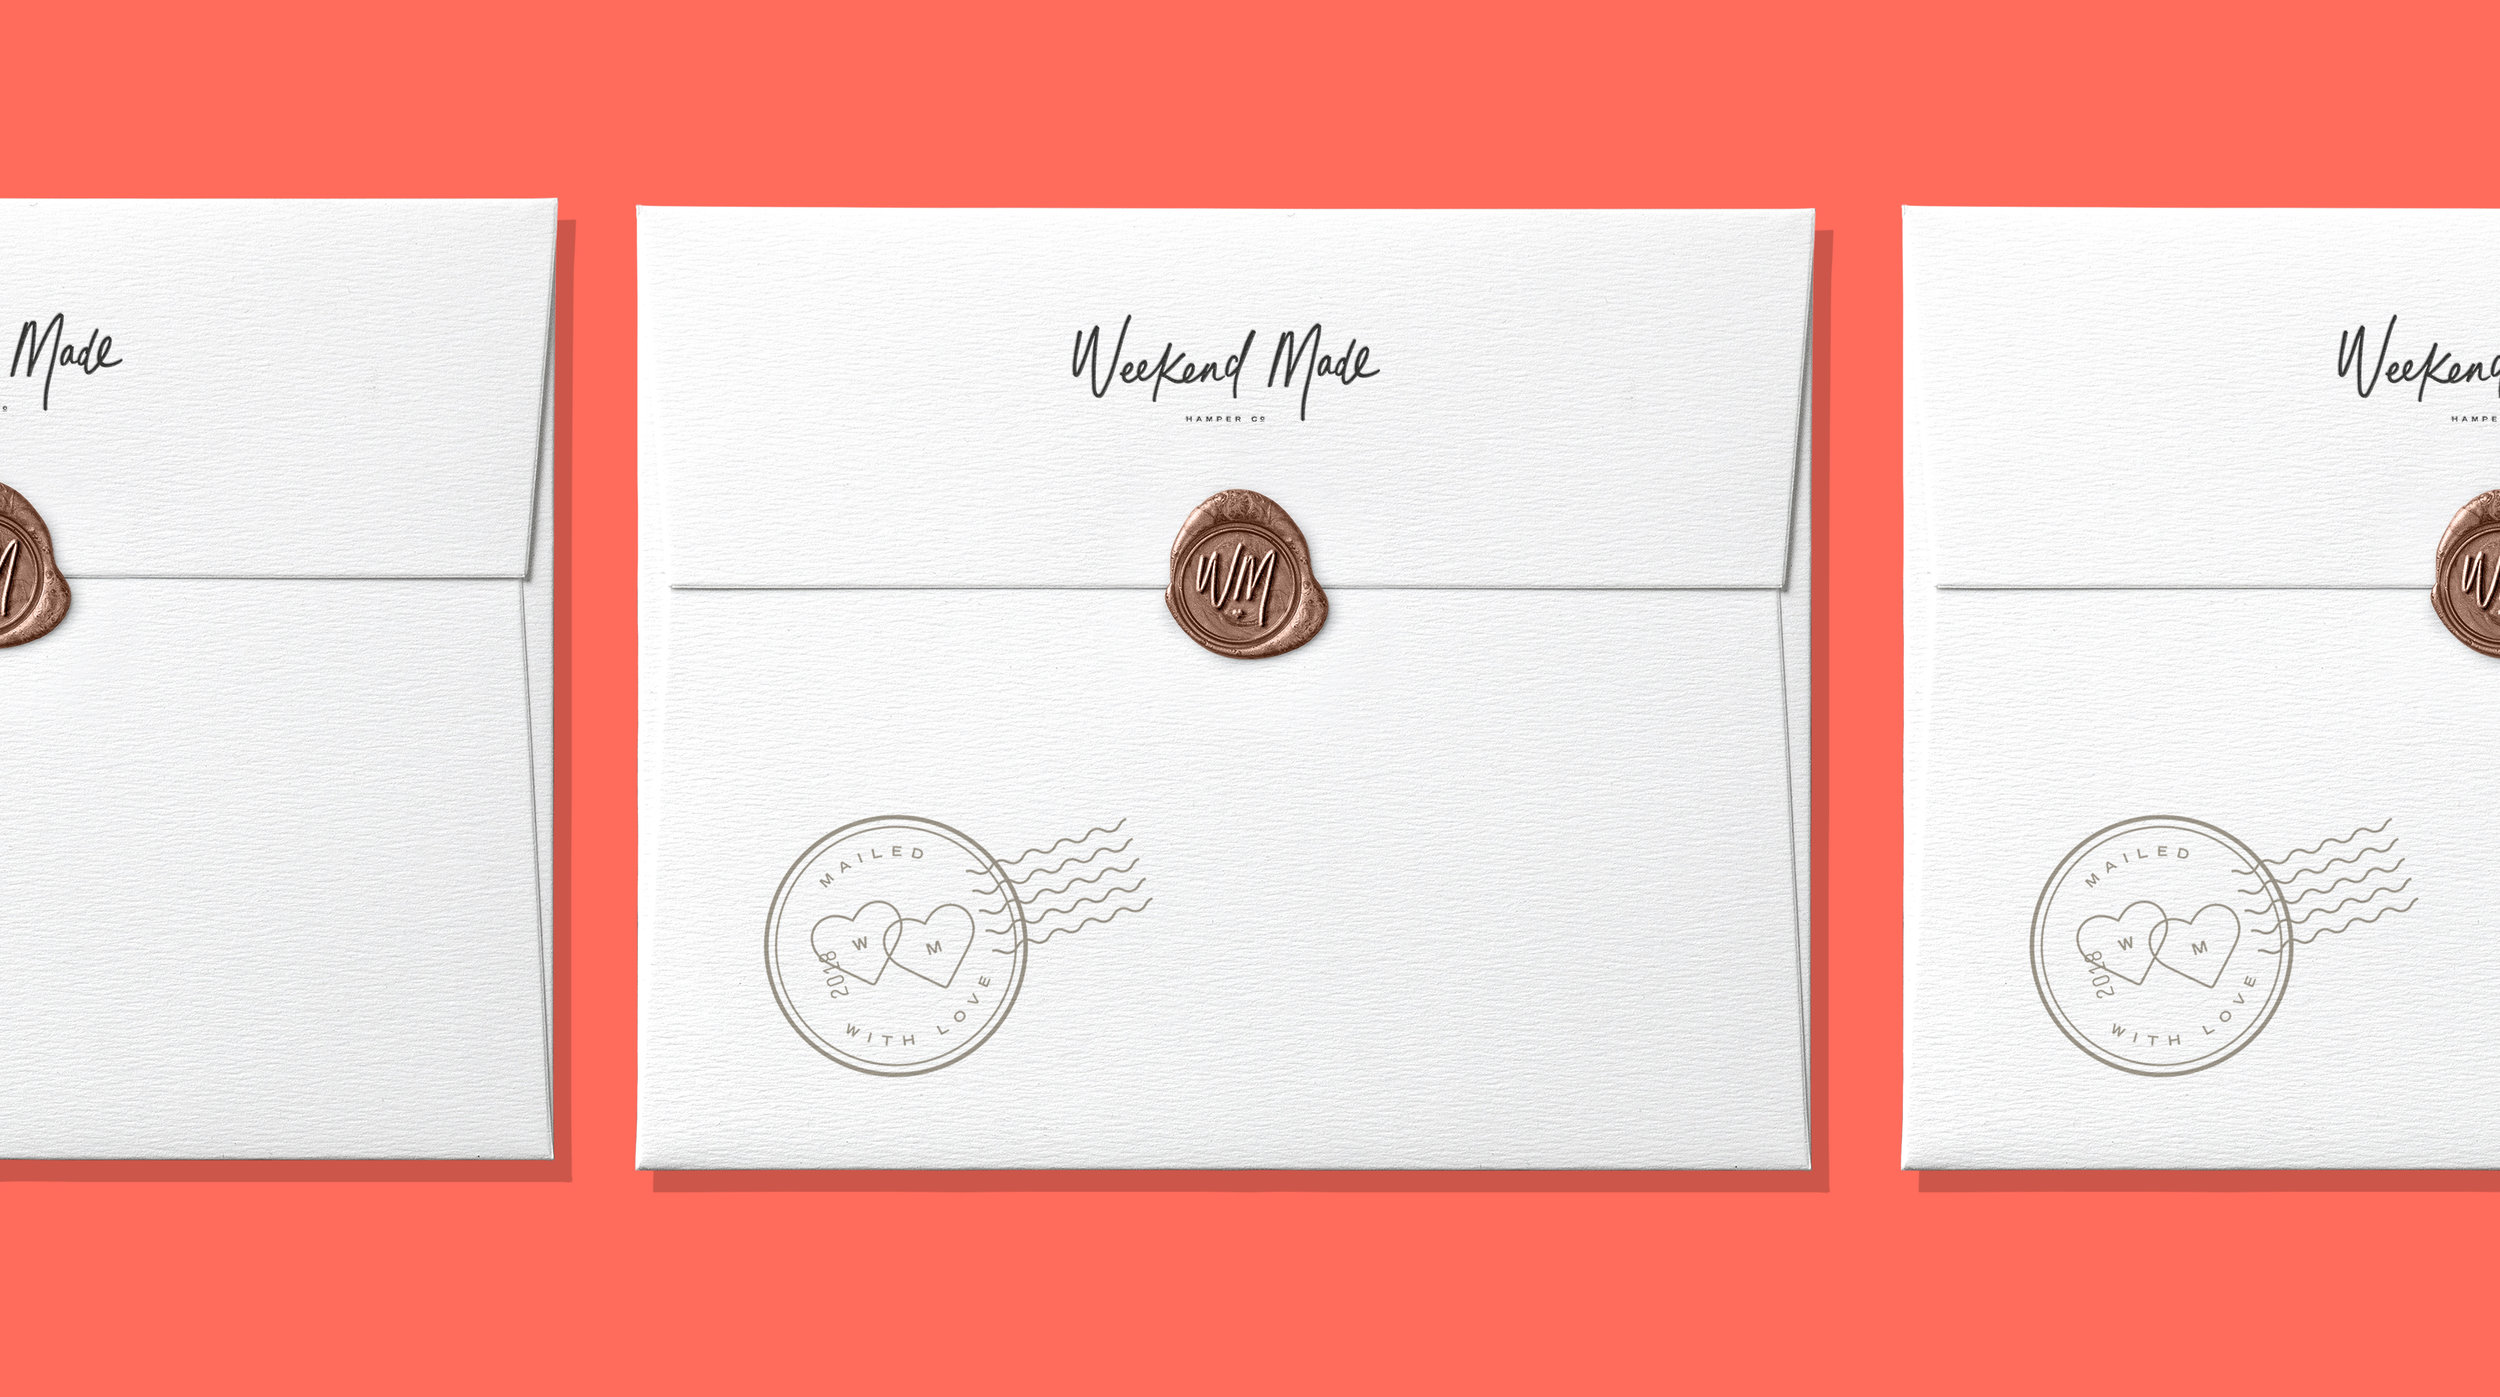 WeekendMade-Envelope-Stationery-Design.jpg